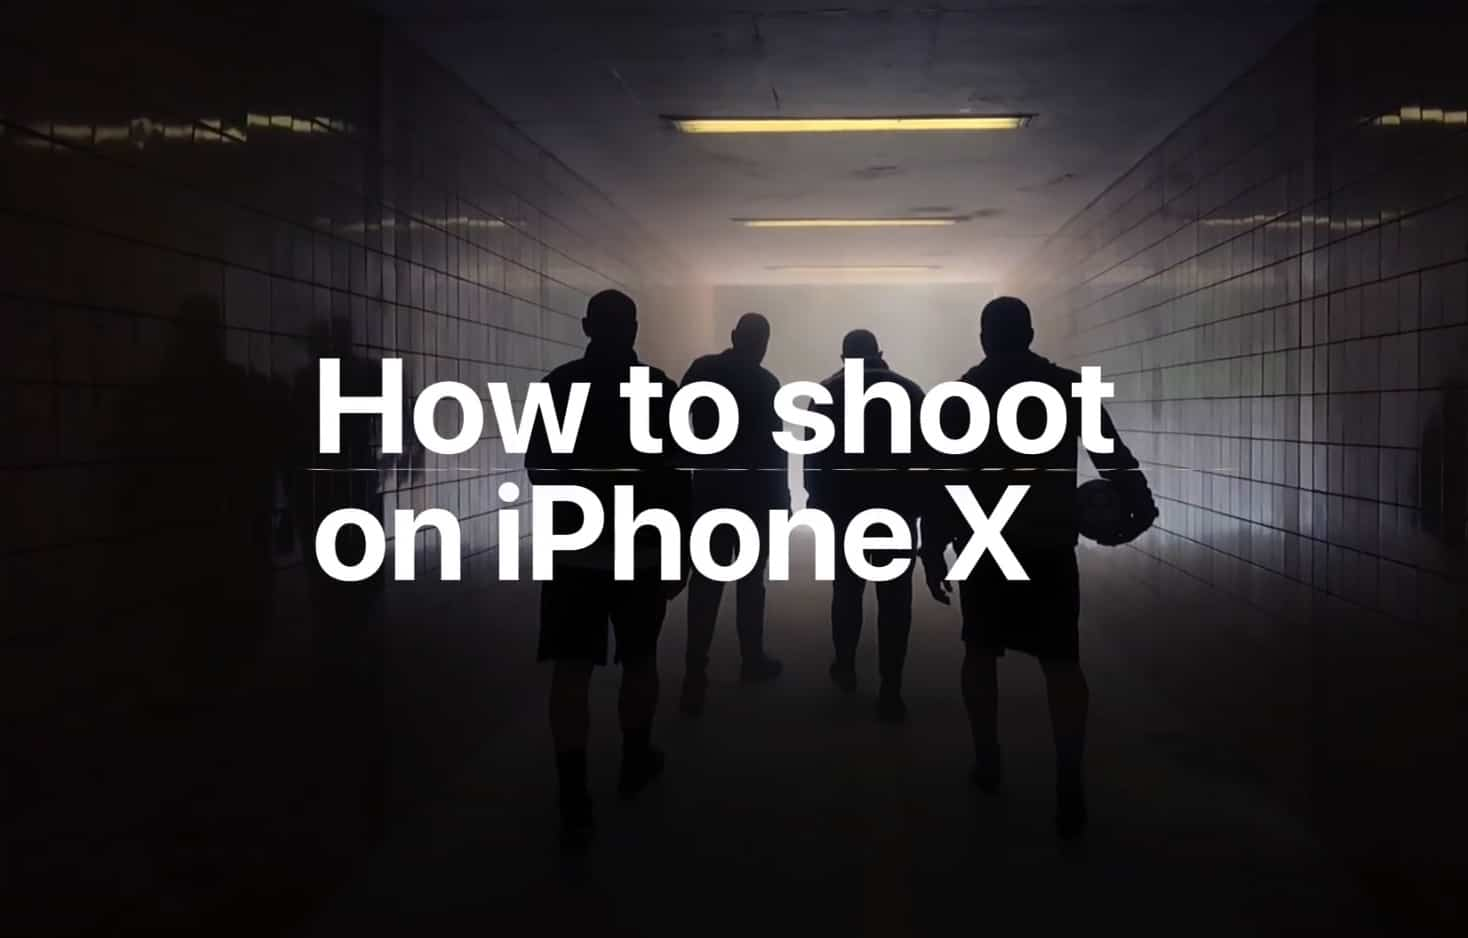 shoot on iPhone X